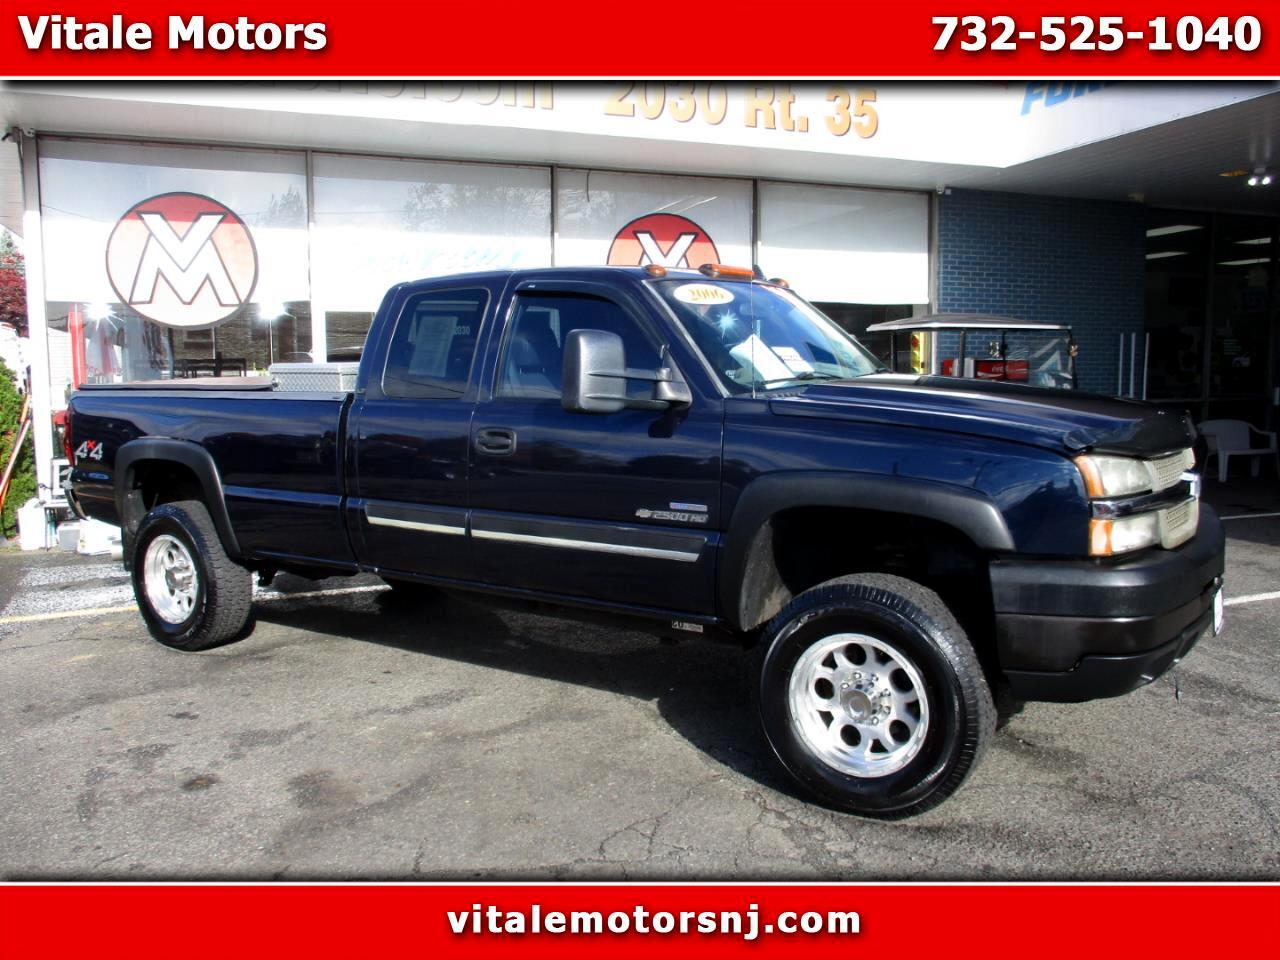 2006 Chevrolet Silverado 2500HD LS EXT. CAB LONG BED DIESEL 4X4